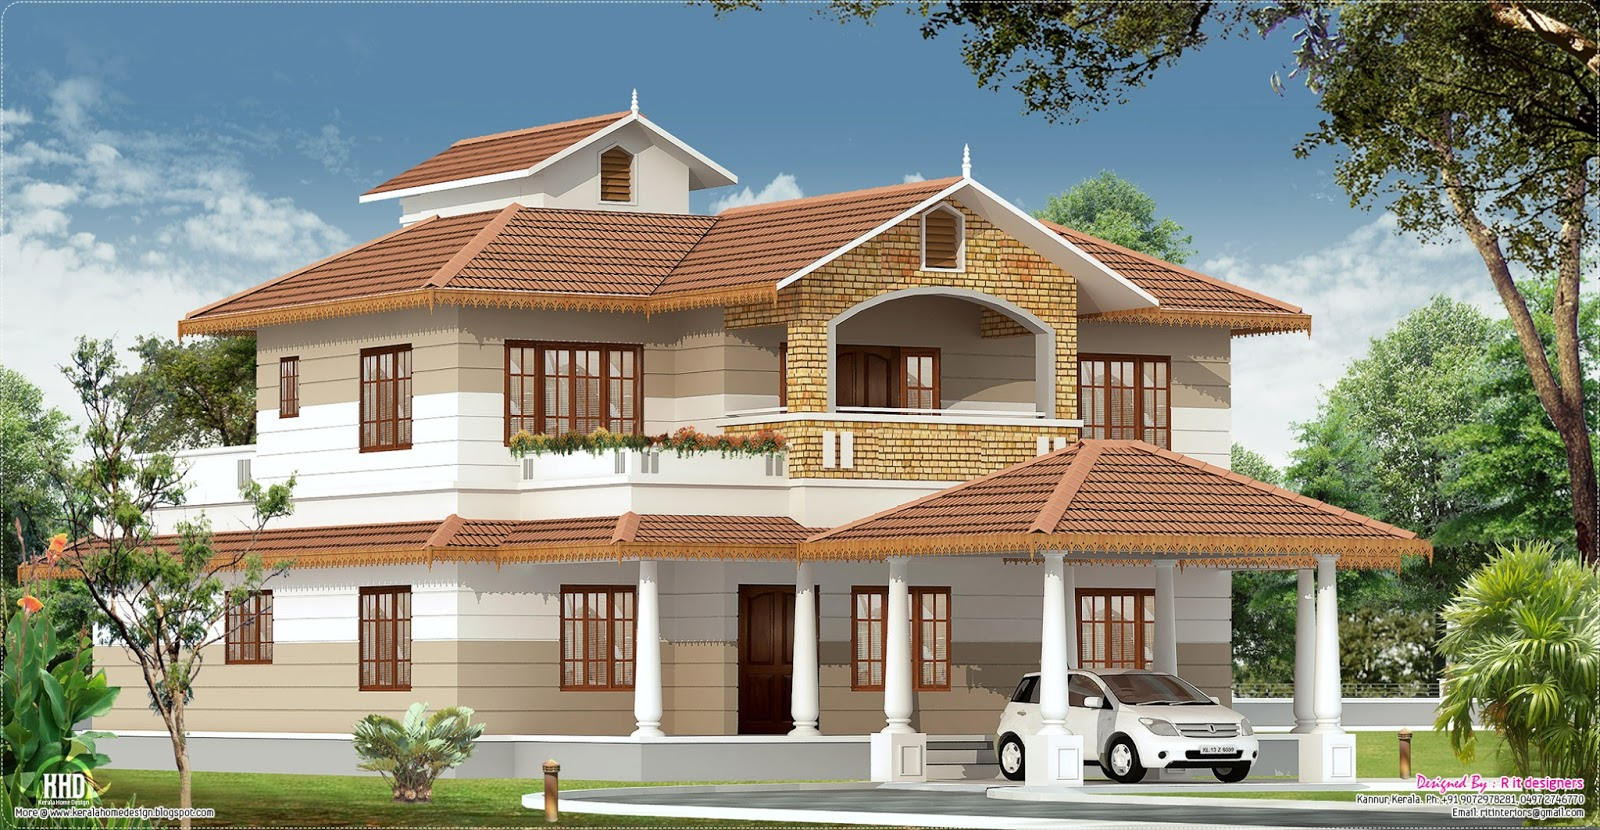 2700 kerala home with interior designs kerala for New model house interior design